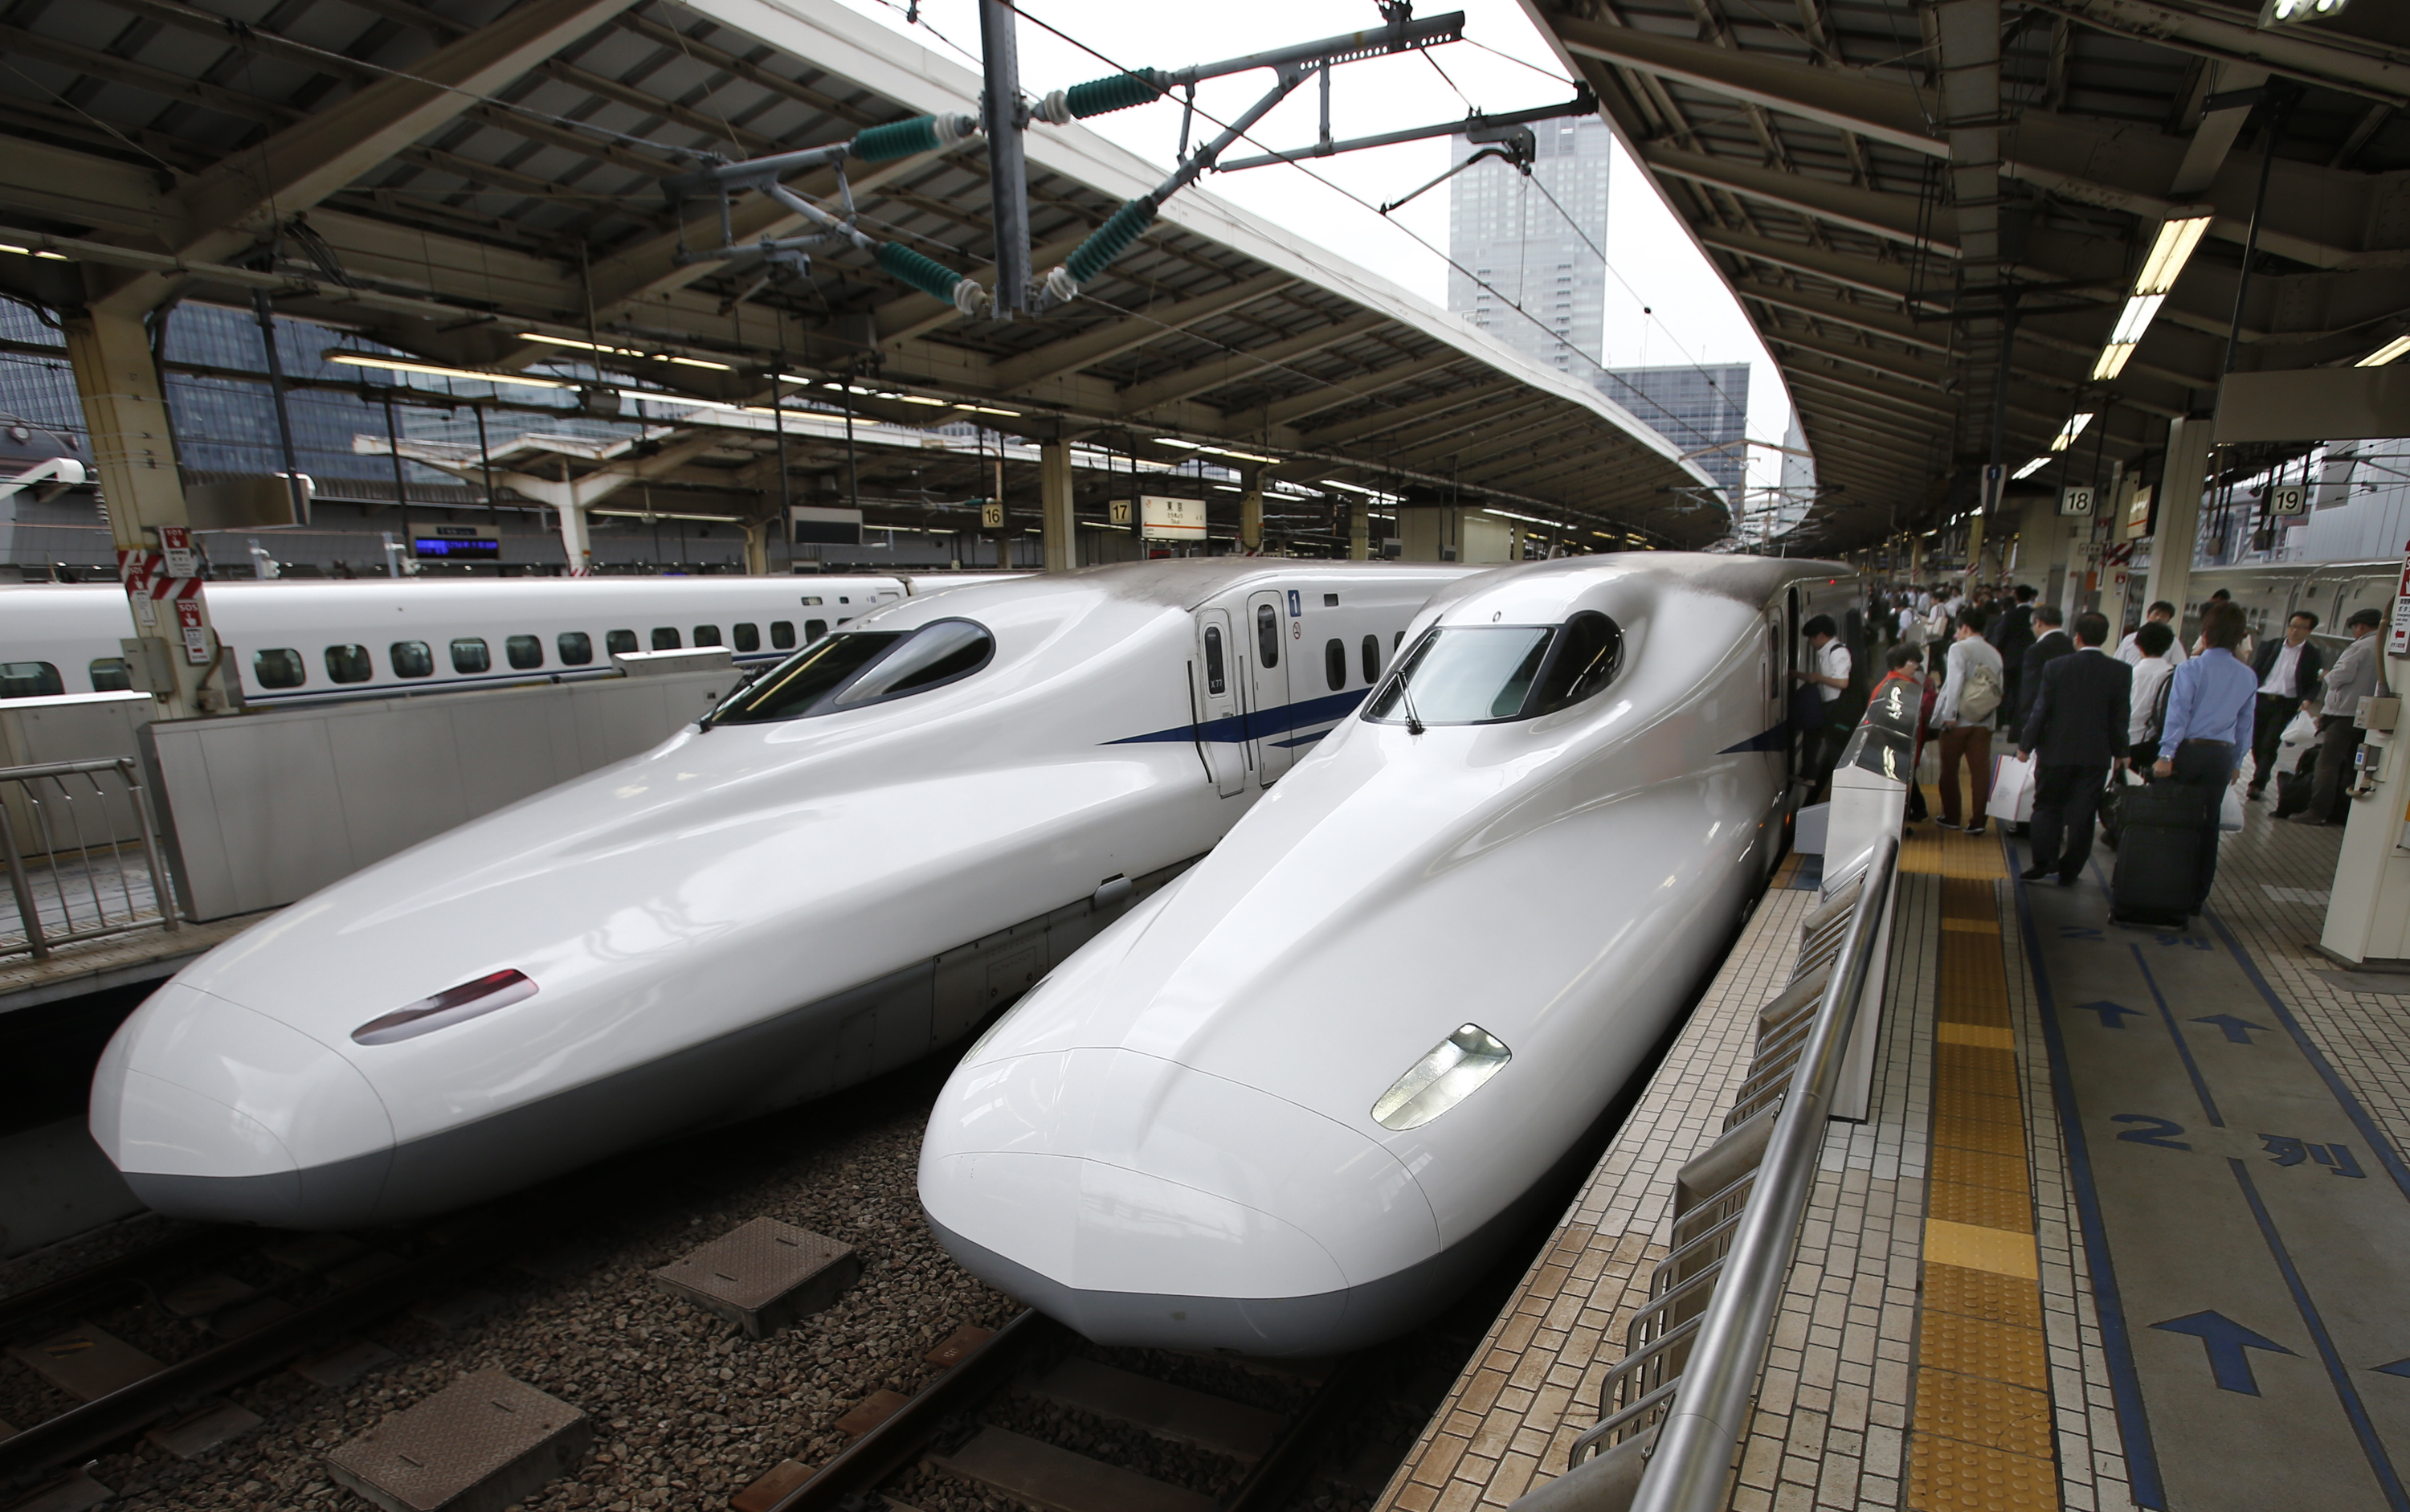 FILE - In this Sept. 24, 2014 filephoto, passengers get on the Shinkansen high-speed train at Tokyo station in Tokyo. Photo: AP